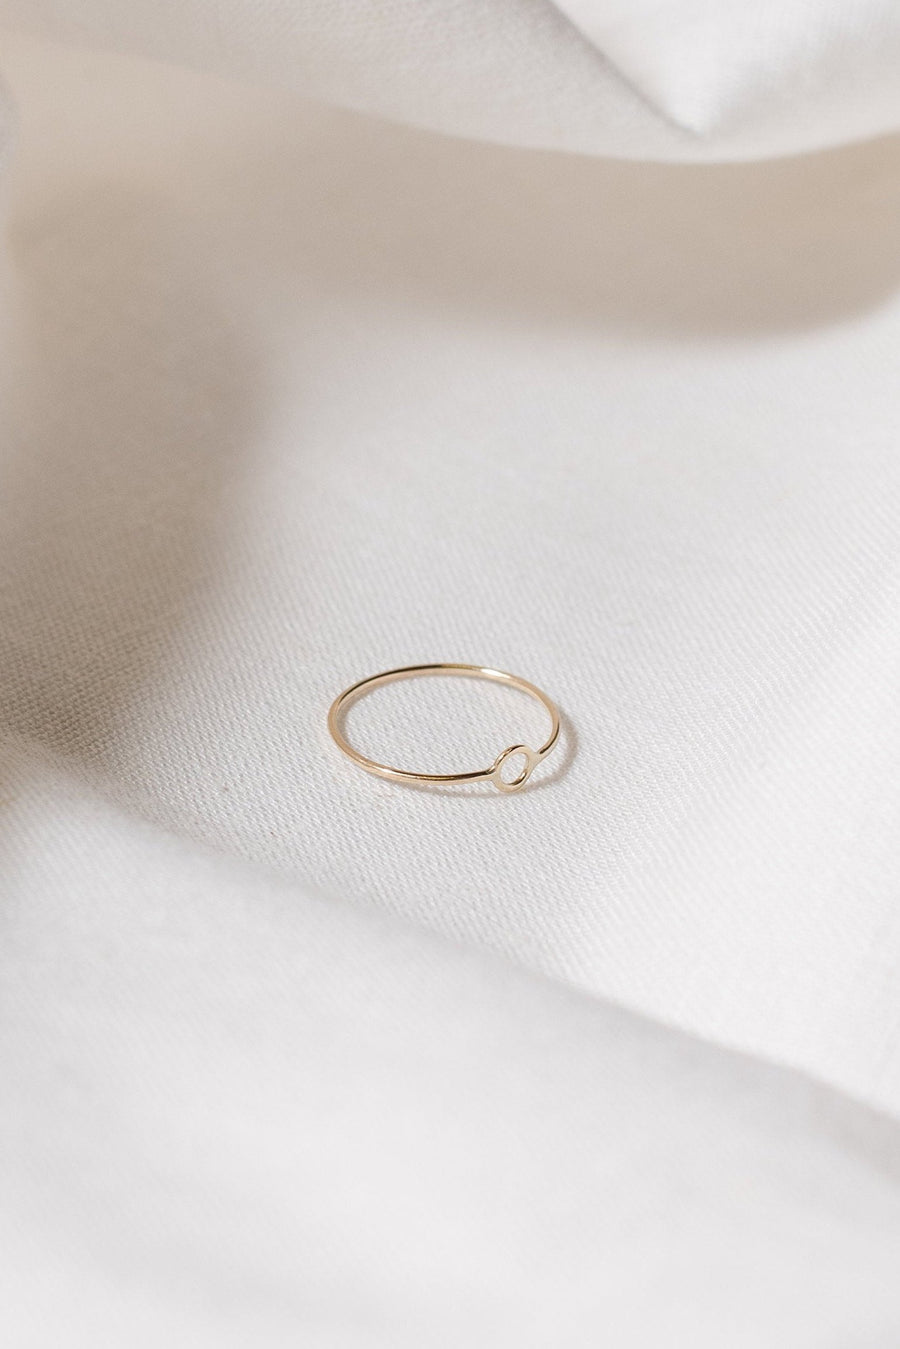 treen-studio-mini-circle-ring-gold